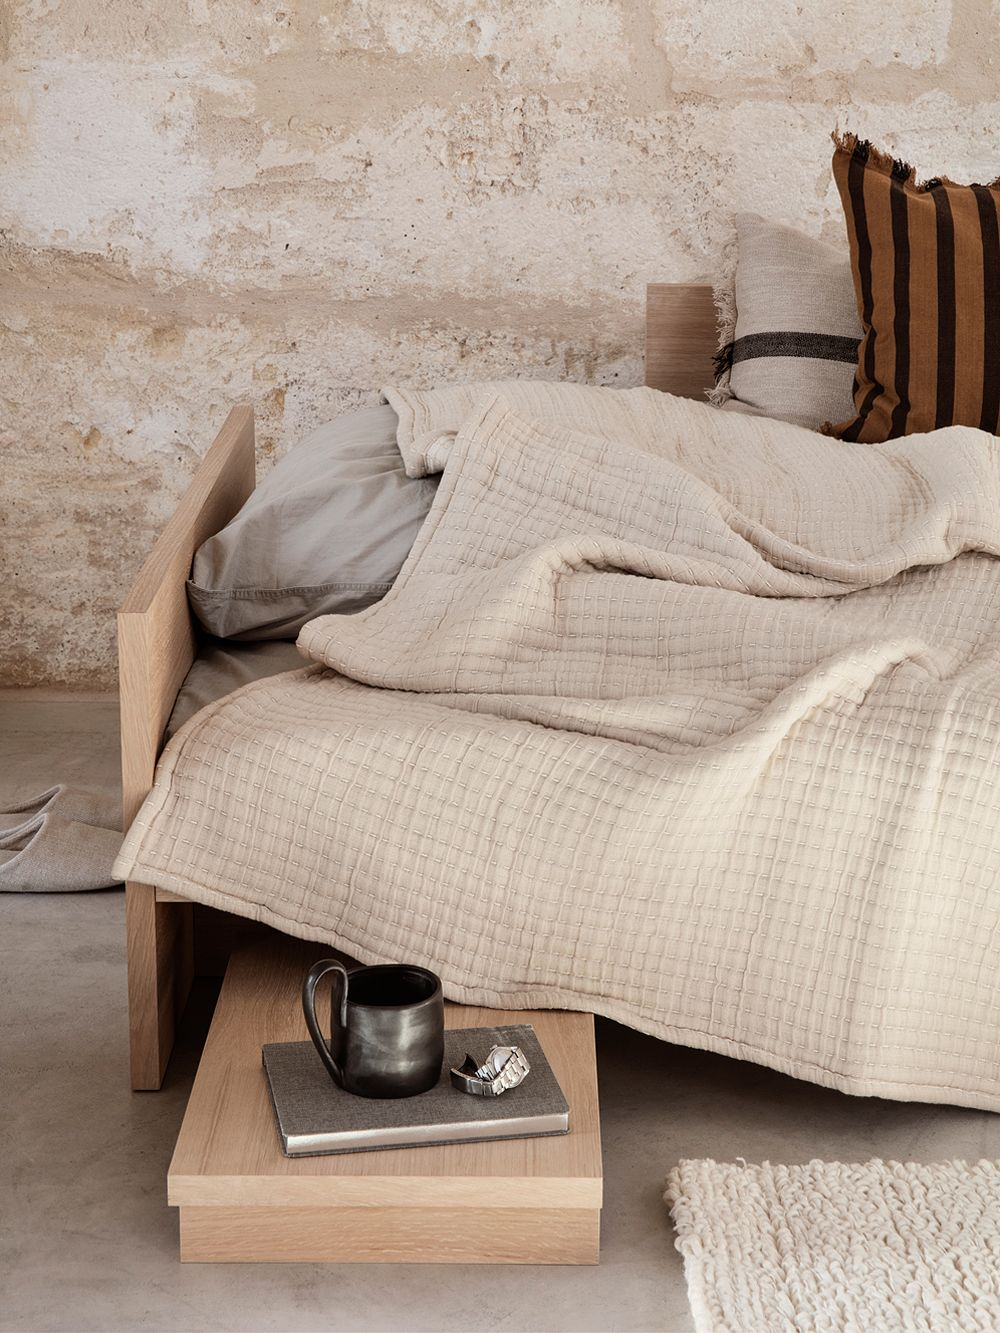 Ferm Living Daze bedspread in sand